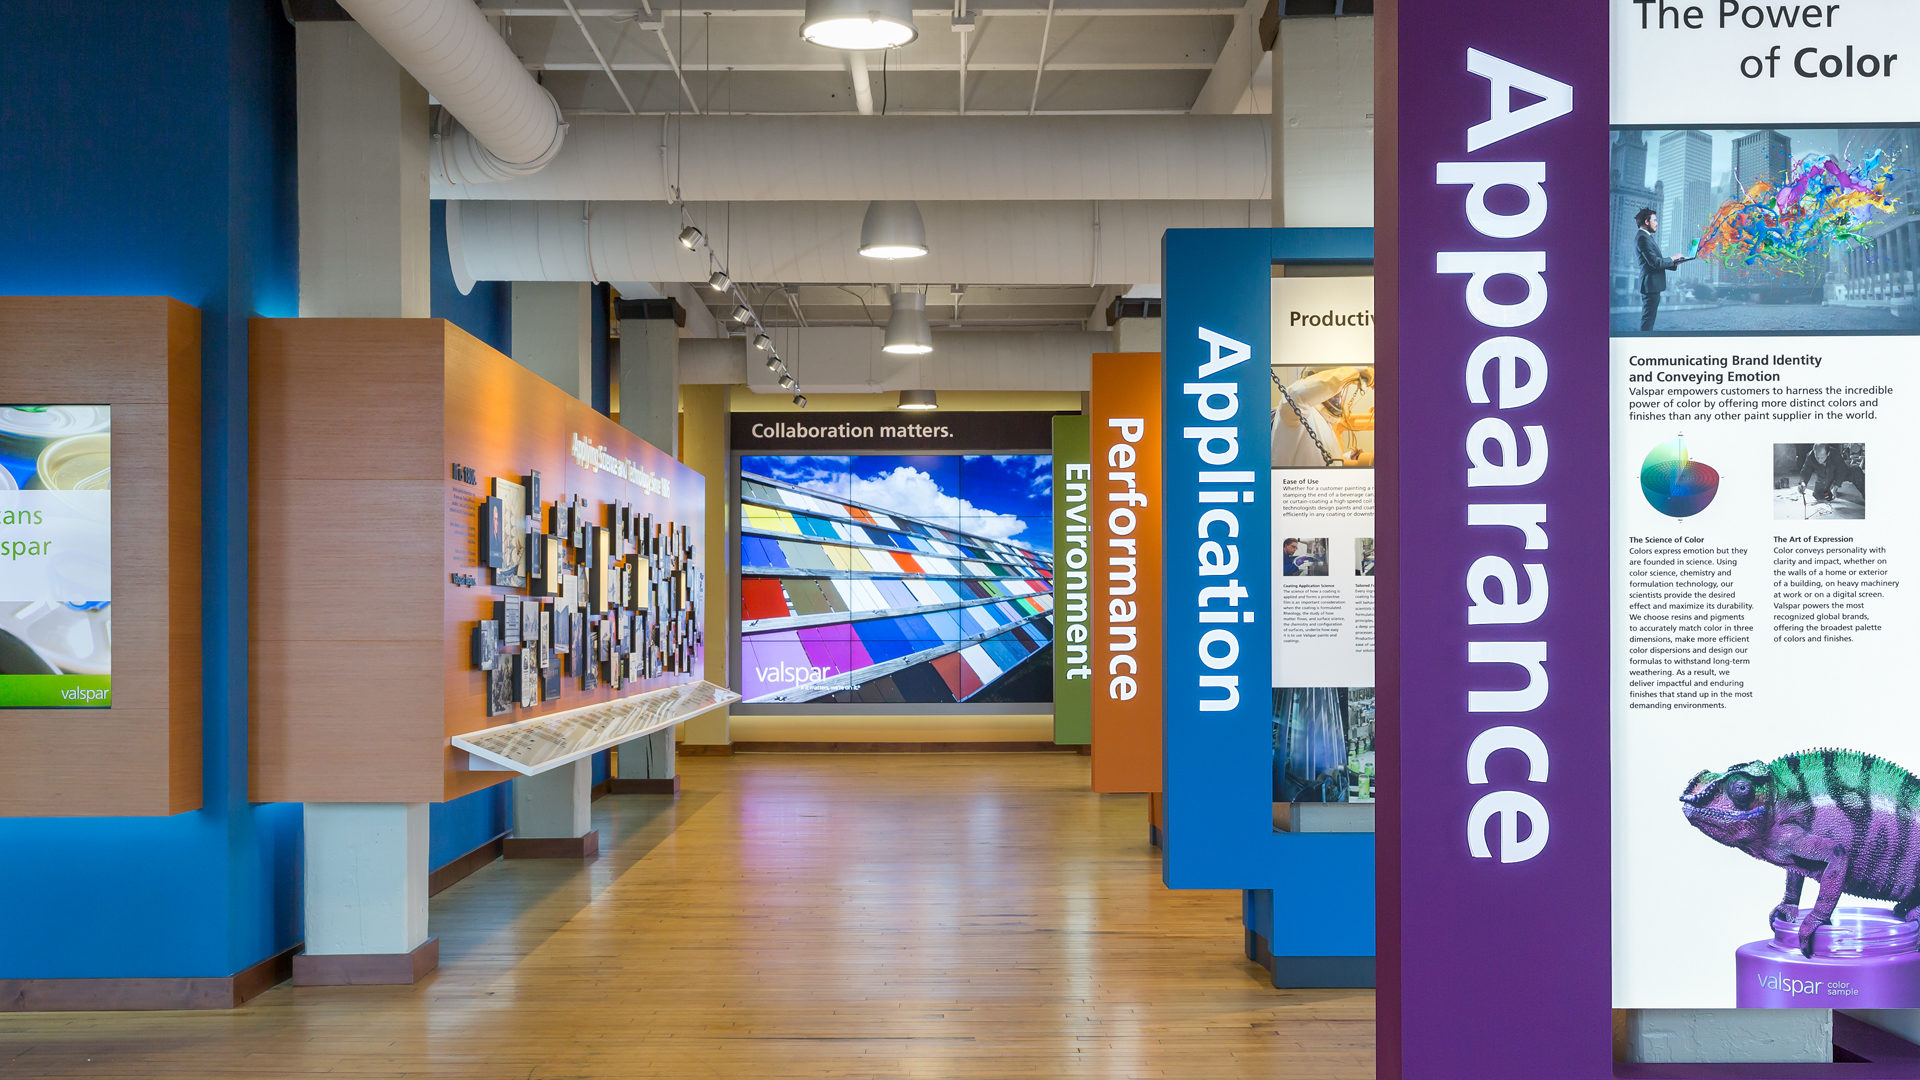 Valspar Applied Science and Technology Center VAST I Manufacturing High Tech RnD Lobby Show Room